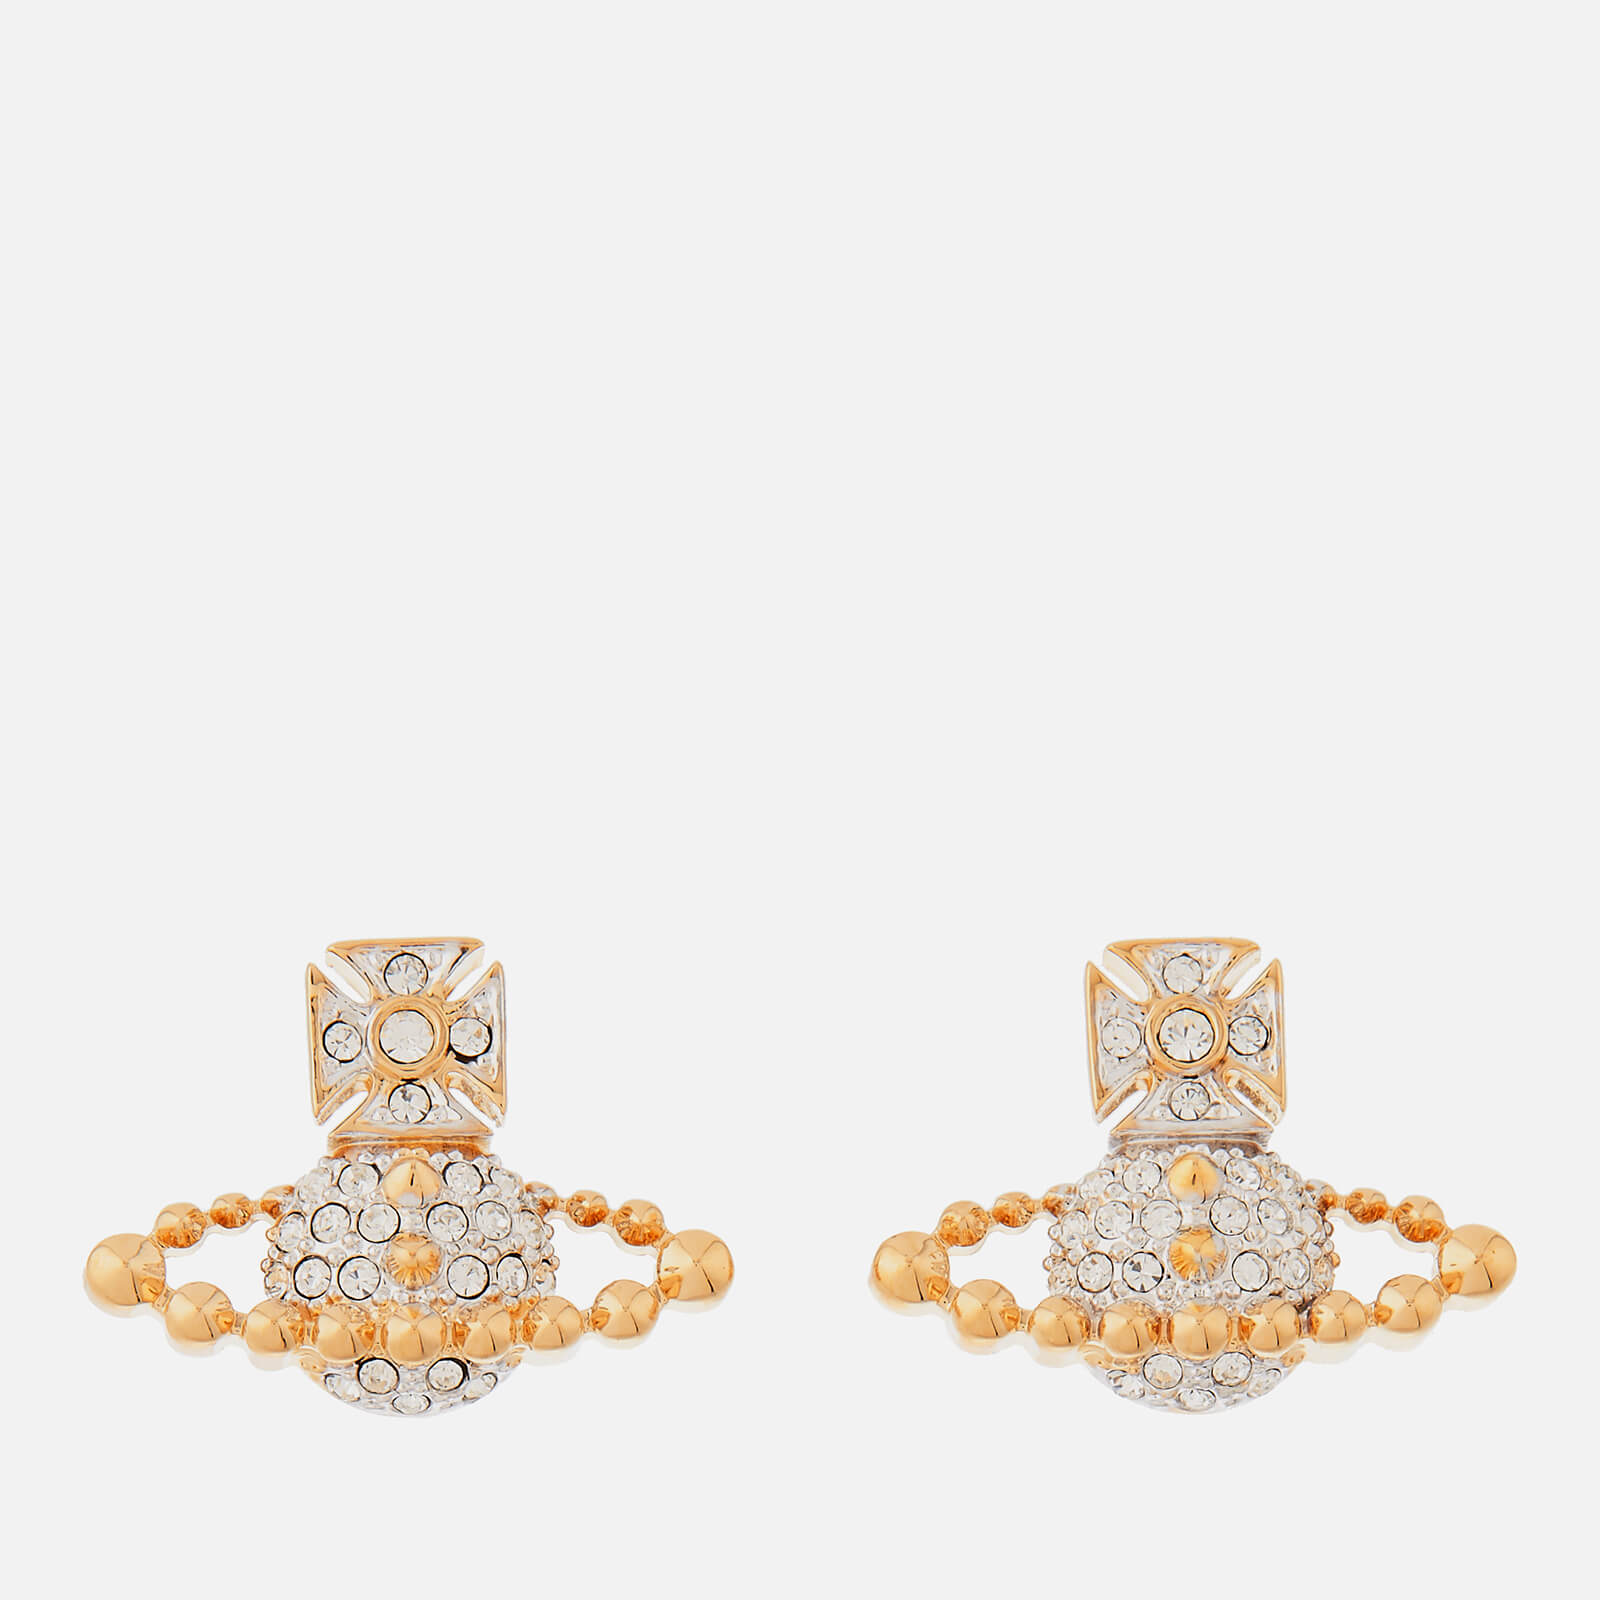 2befed0a89dd82 Vivienne Westwood Women's Lena Bas Relief Earrings - Rhodium/Gold - Free UK  Delivery over £50